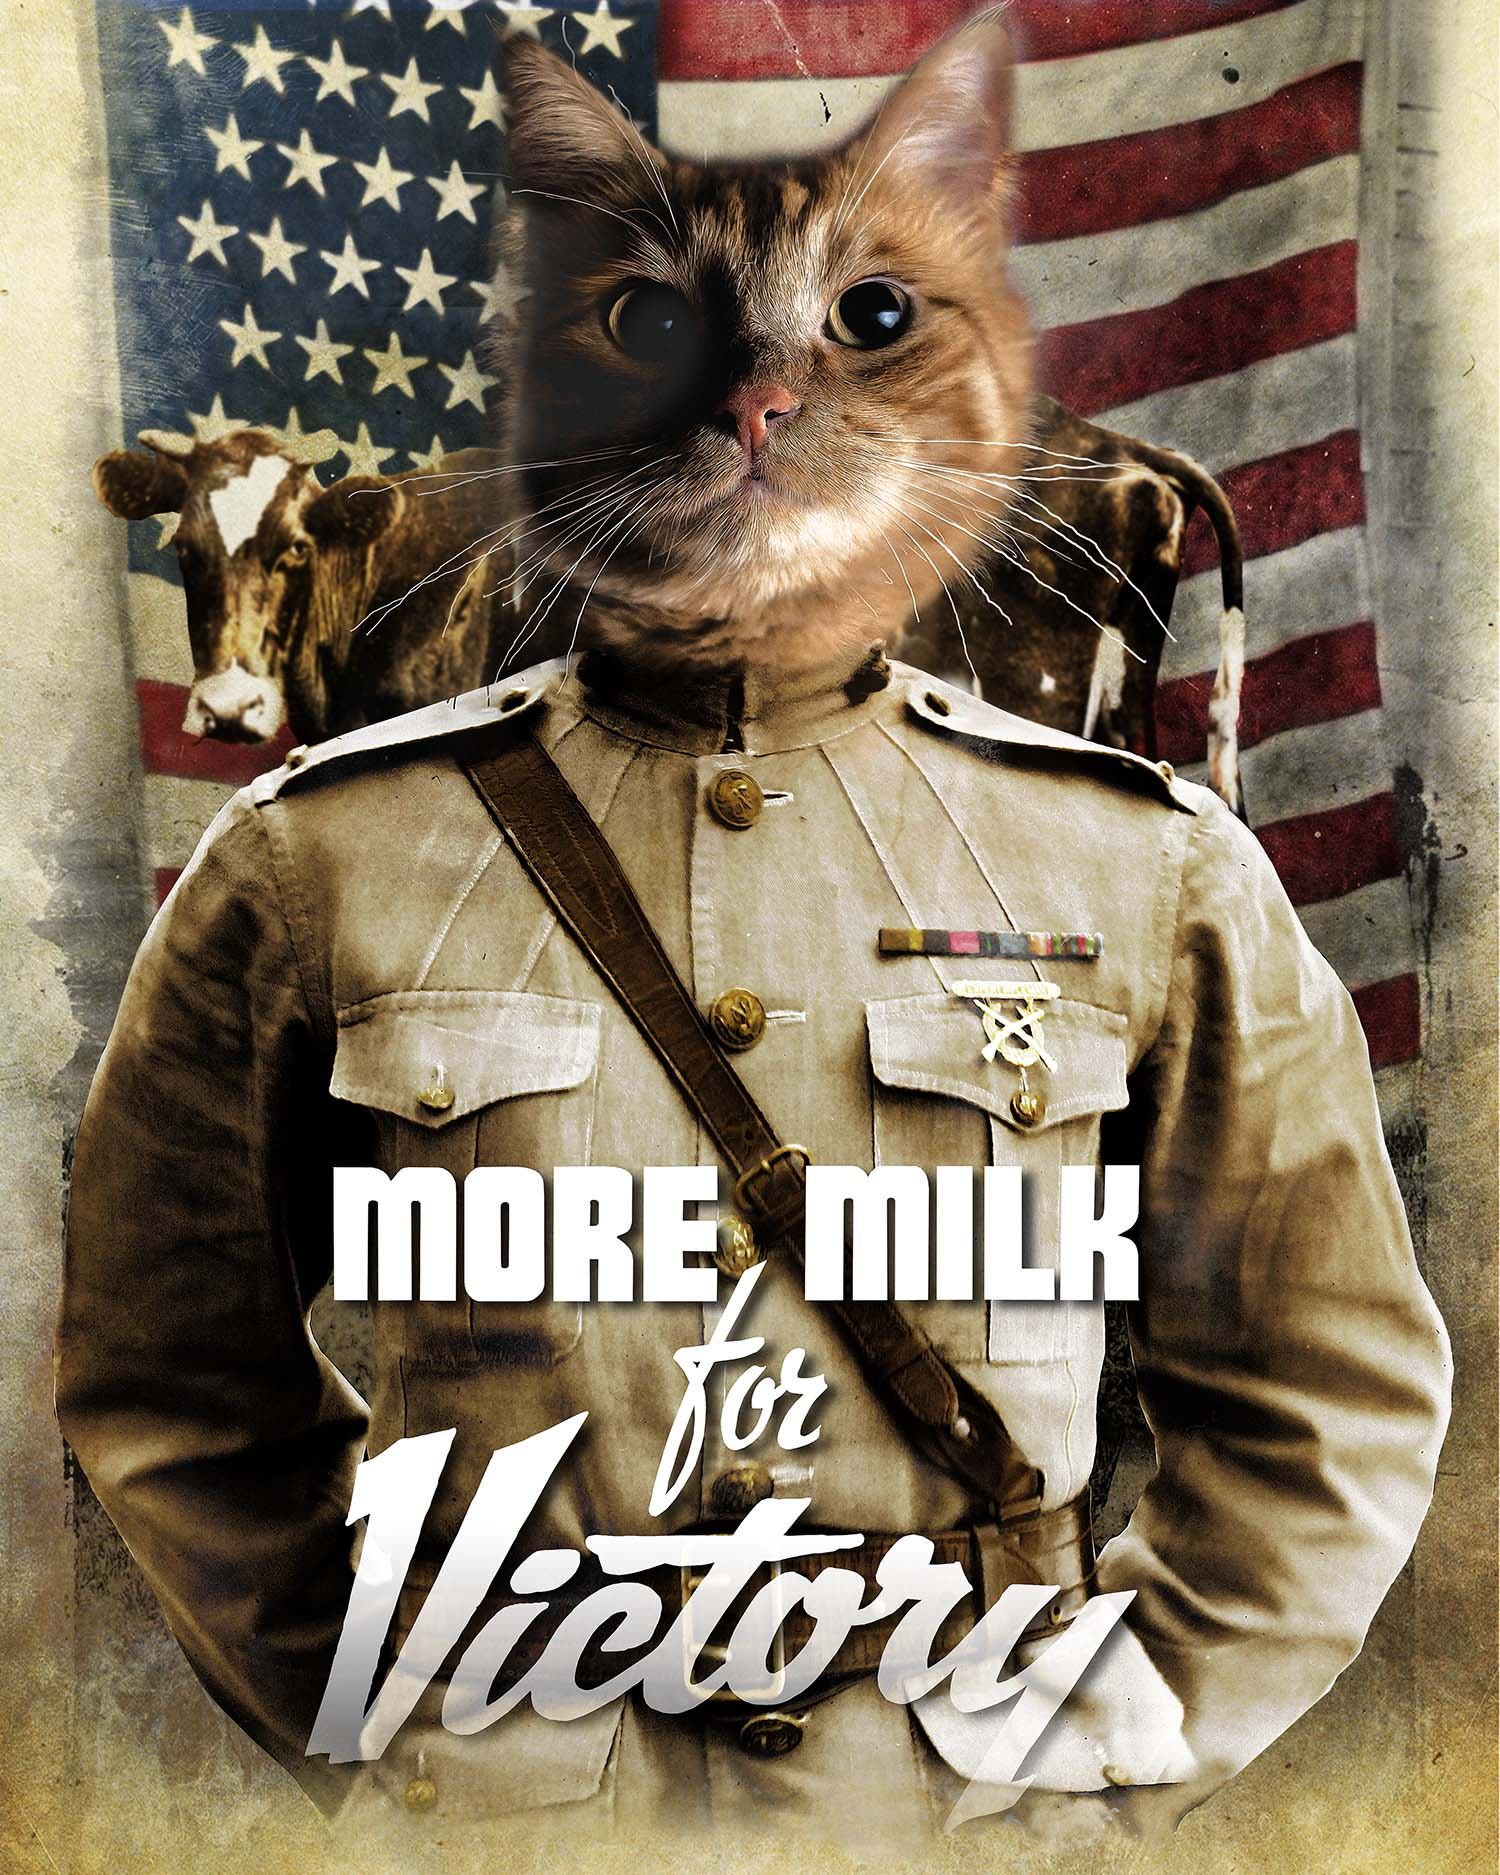 More Milk for Victory